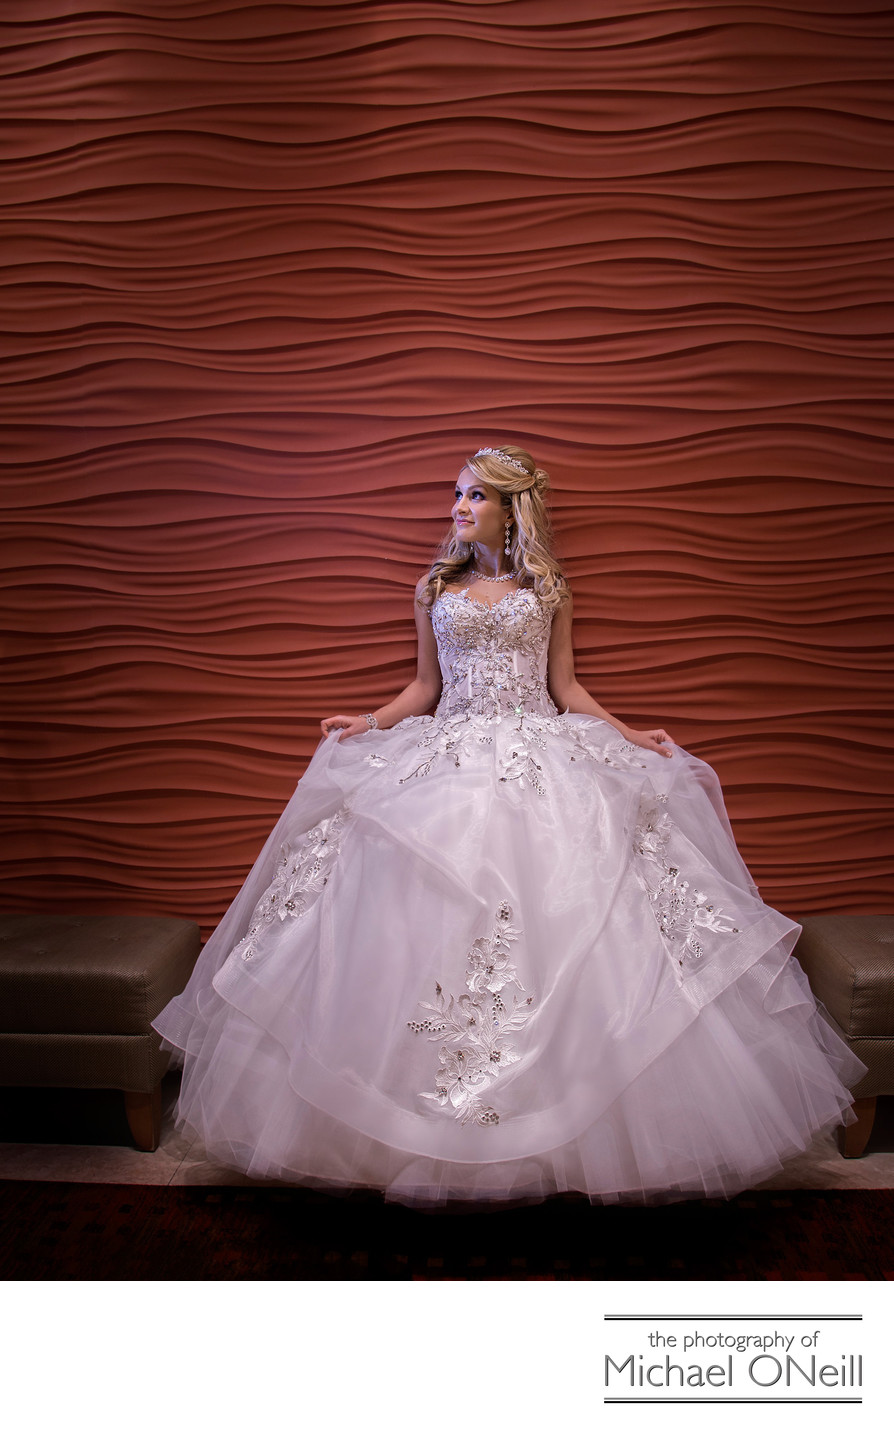 LI Long Island NYC New York Wedding Fashion Photography